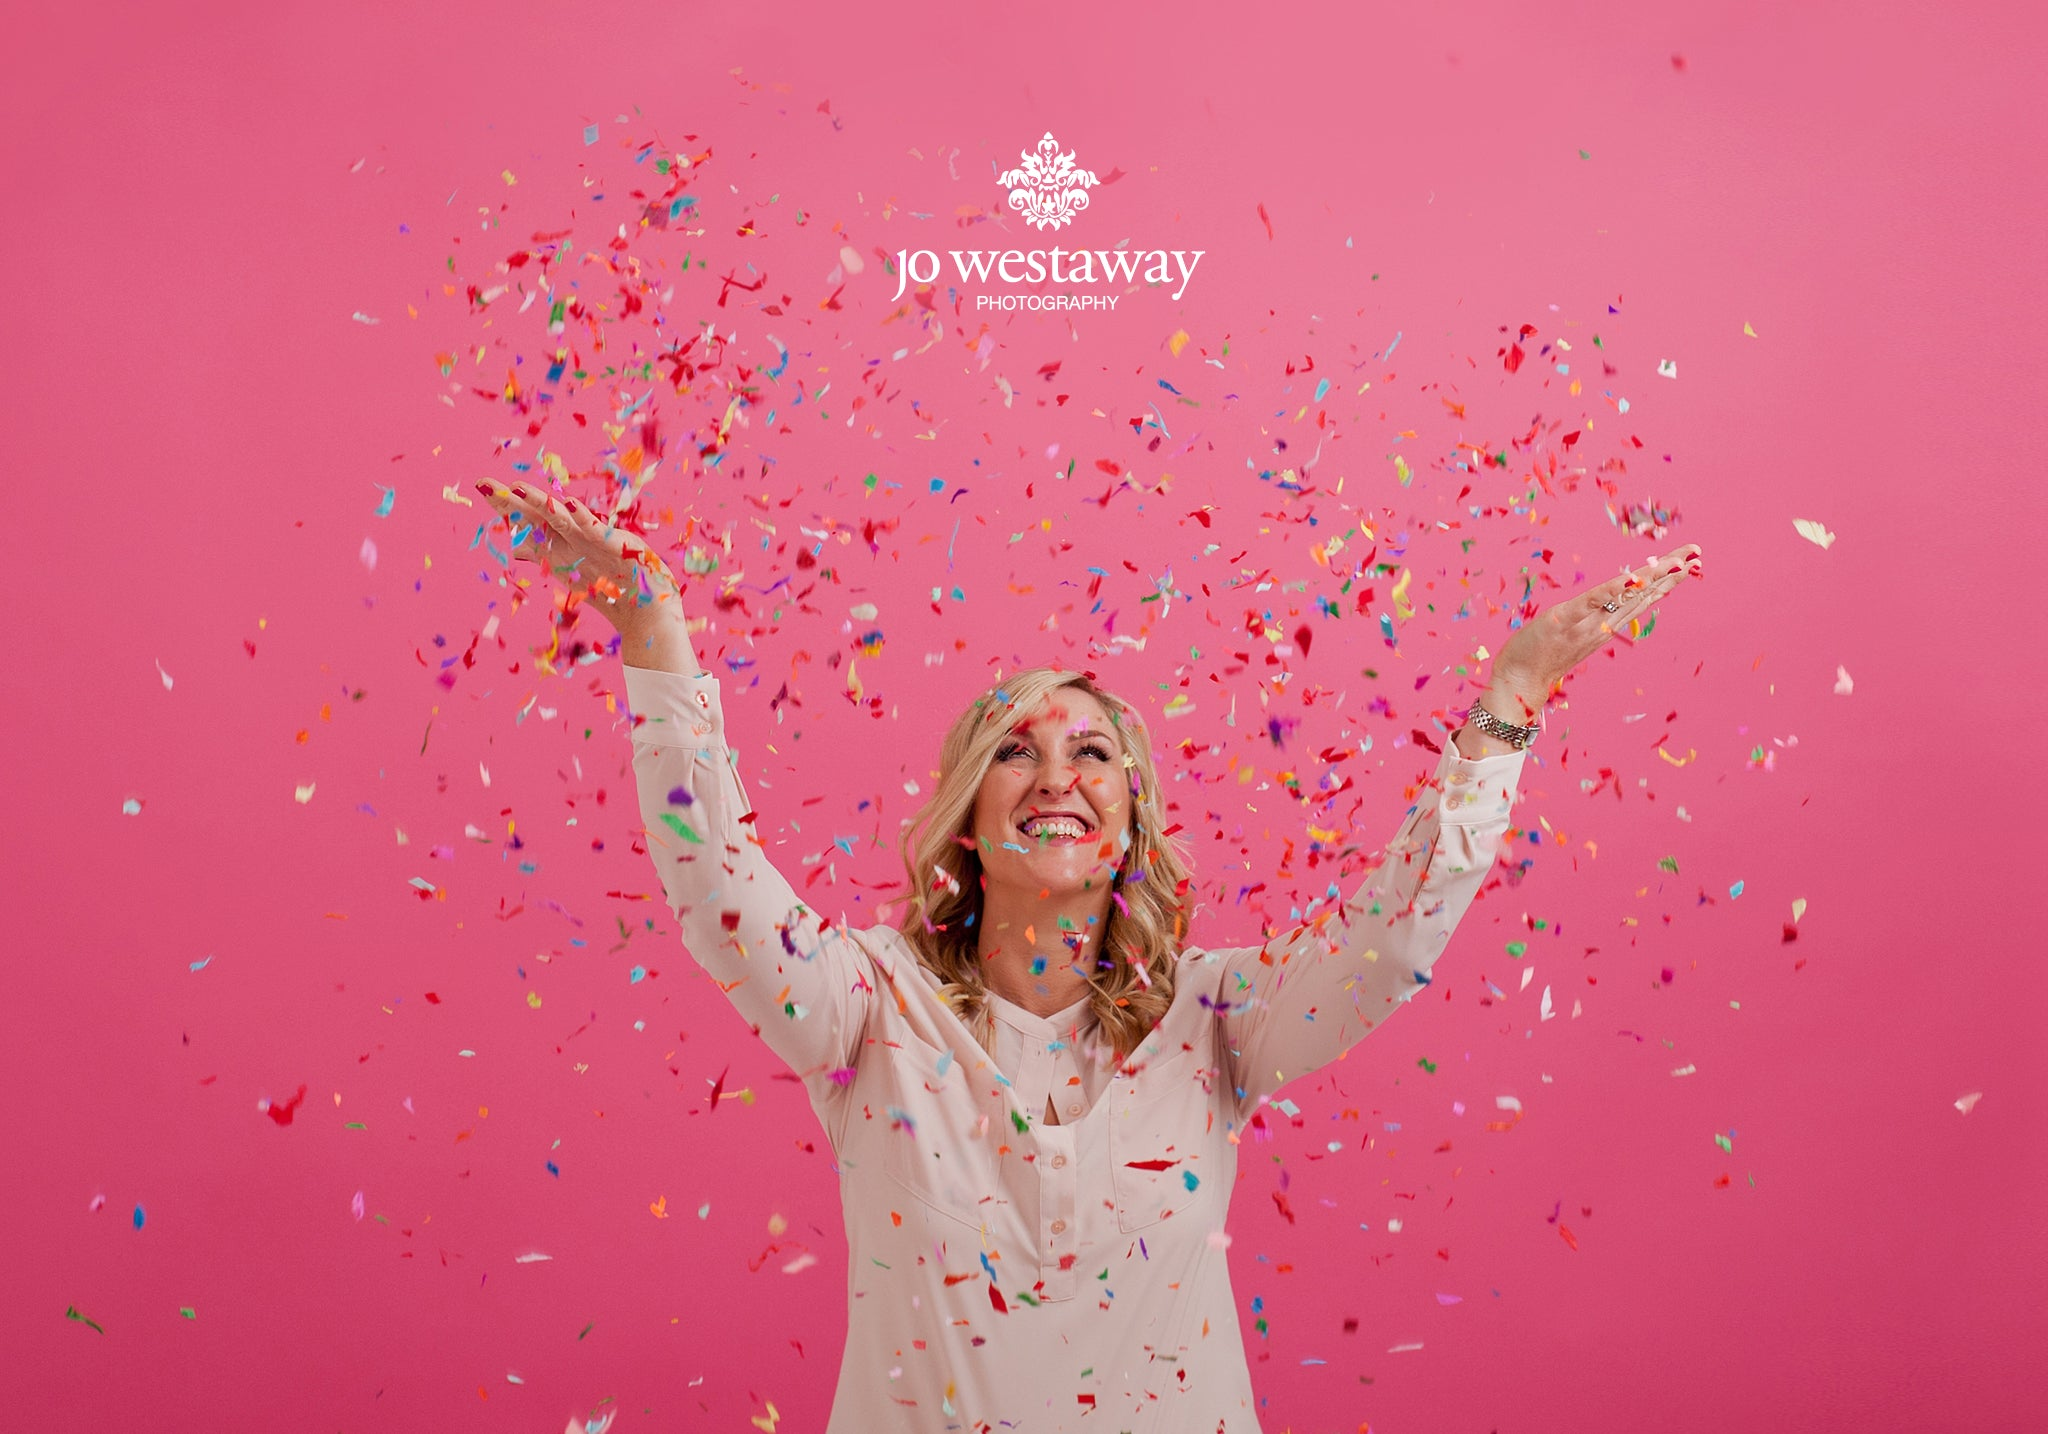 The non-business headshots and personal brand images - confetti and fun -